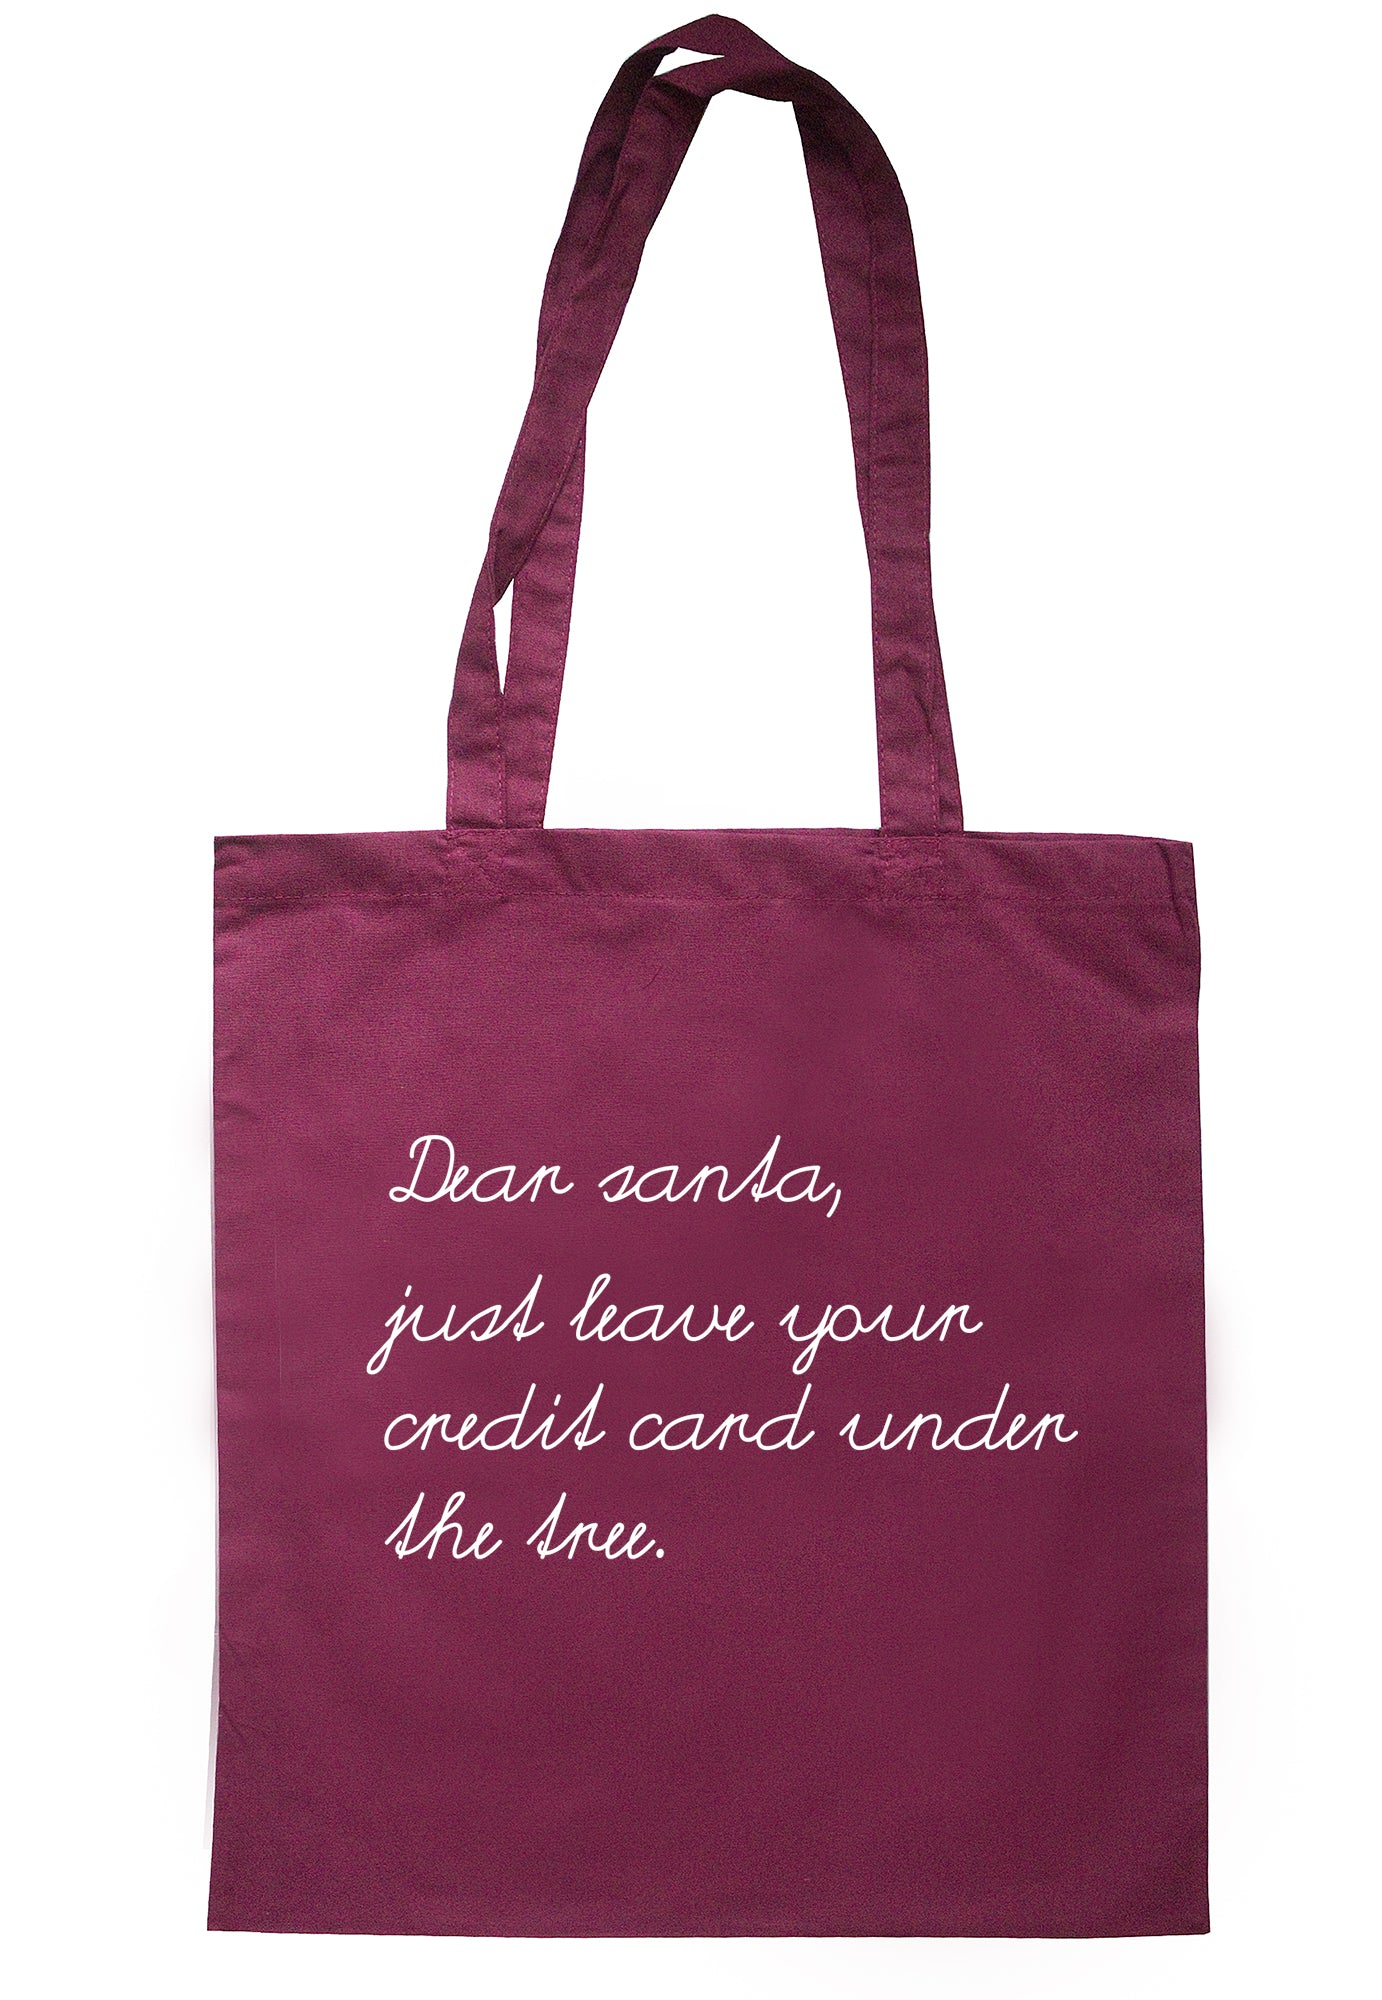 Dear Santa, Just Leave Your Credit Card Under The Tree Tote Bag S0895 - Illustrated Identity Ltd.